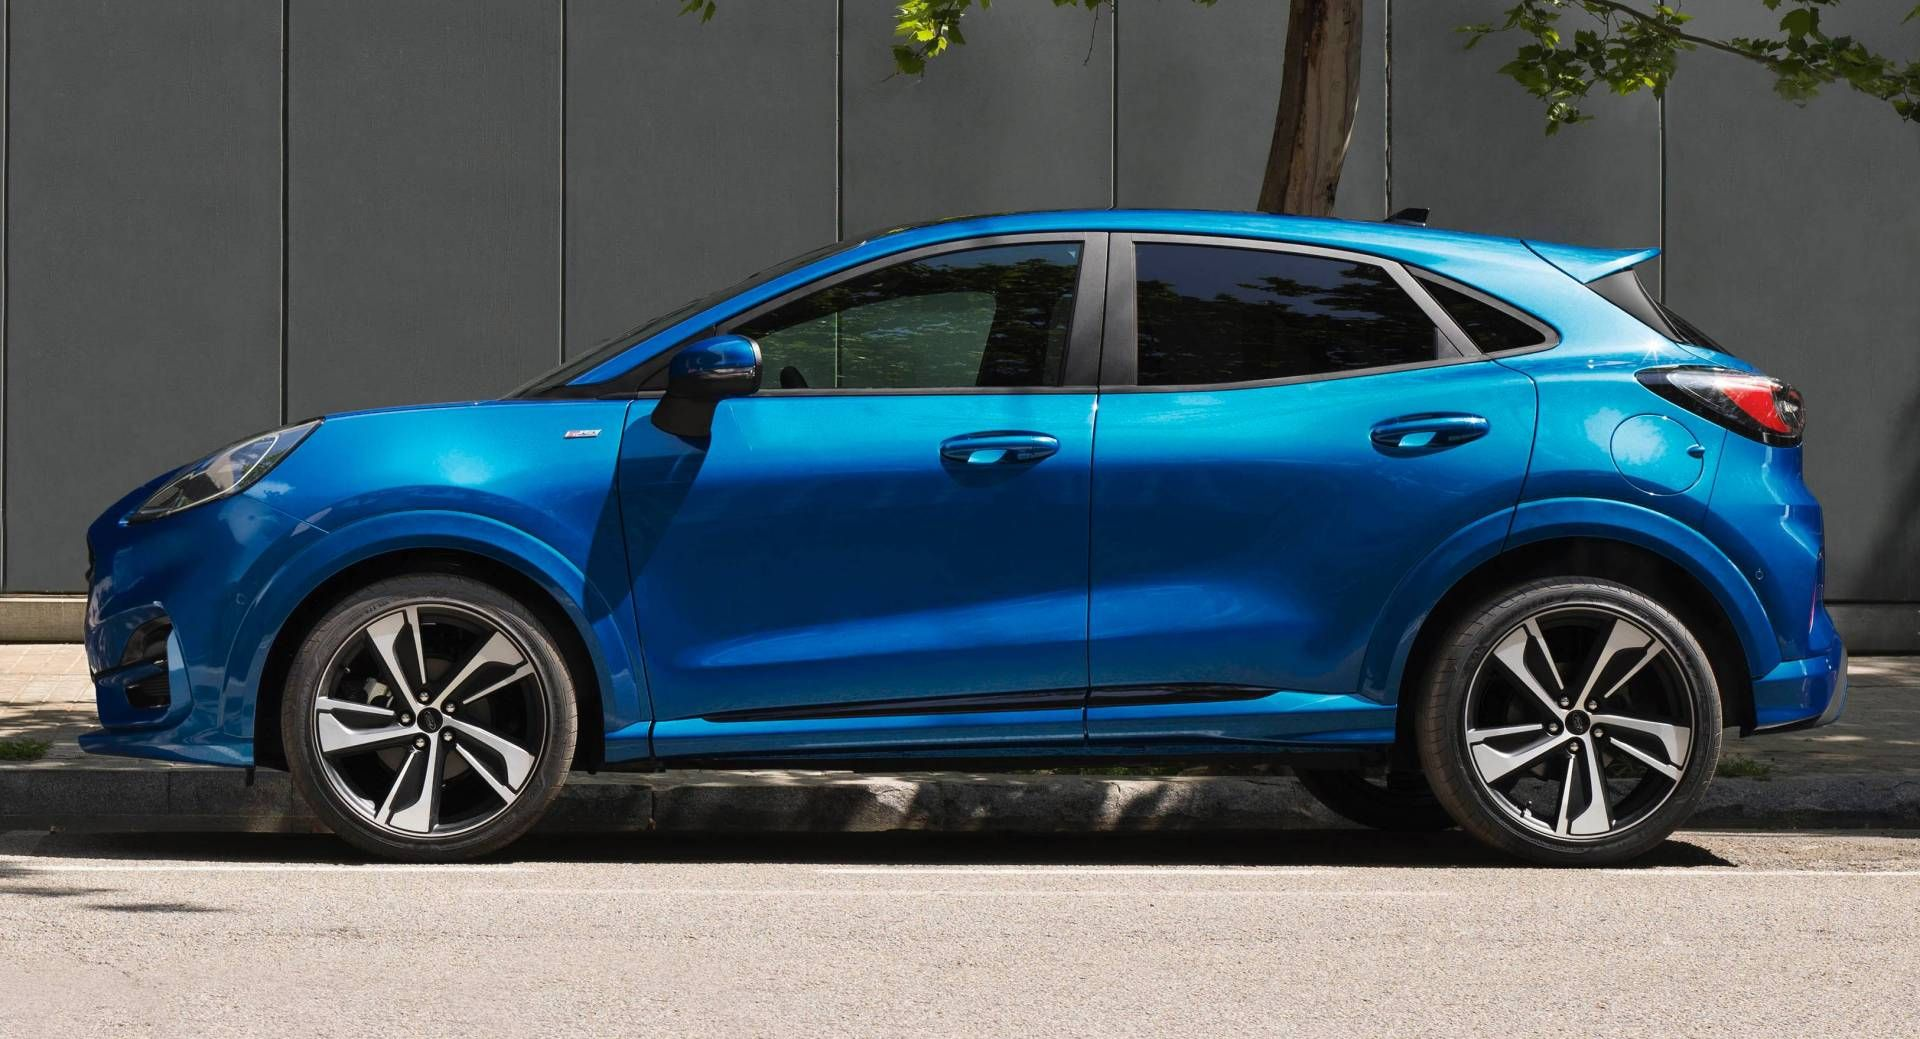 2020 Ford Puma Priced From 20 845 In The Uk 3k Higher Than Ecosport Ford Puma Ford Sync New Cars